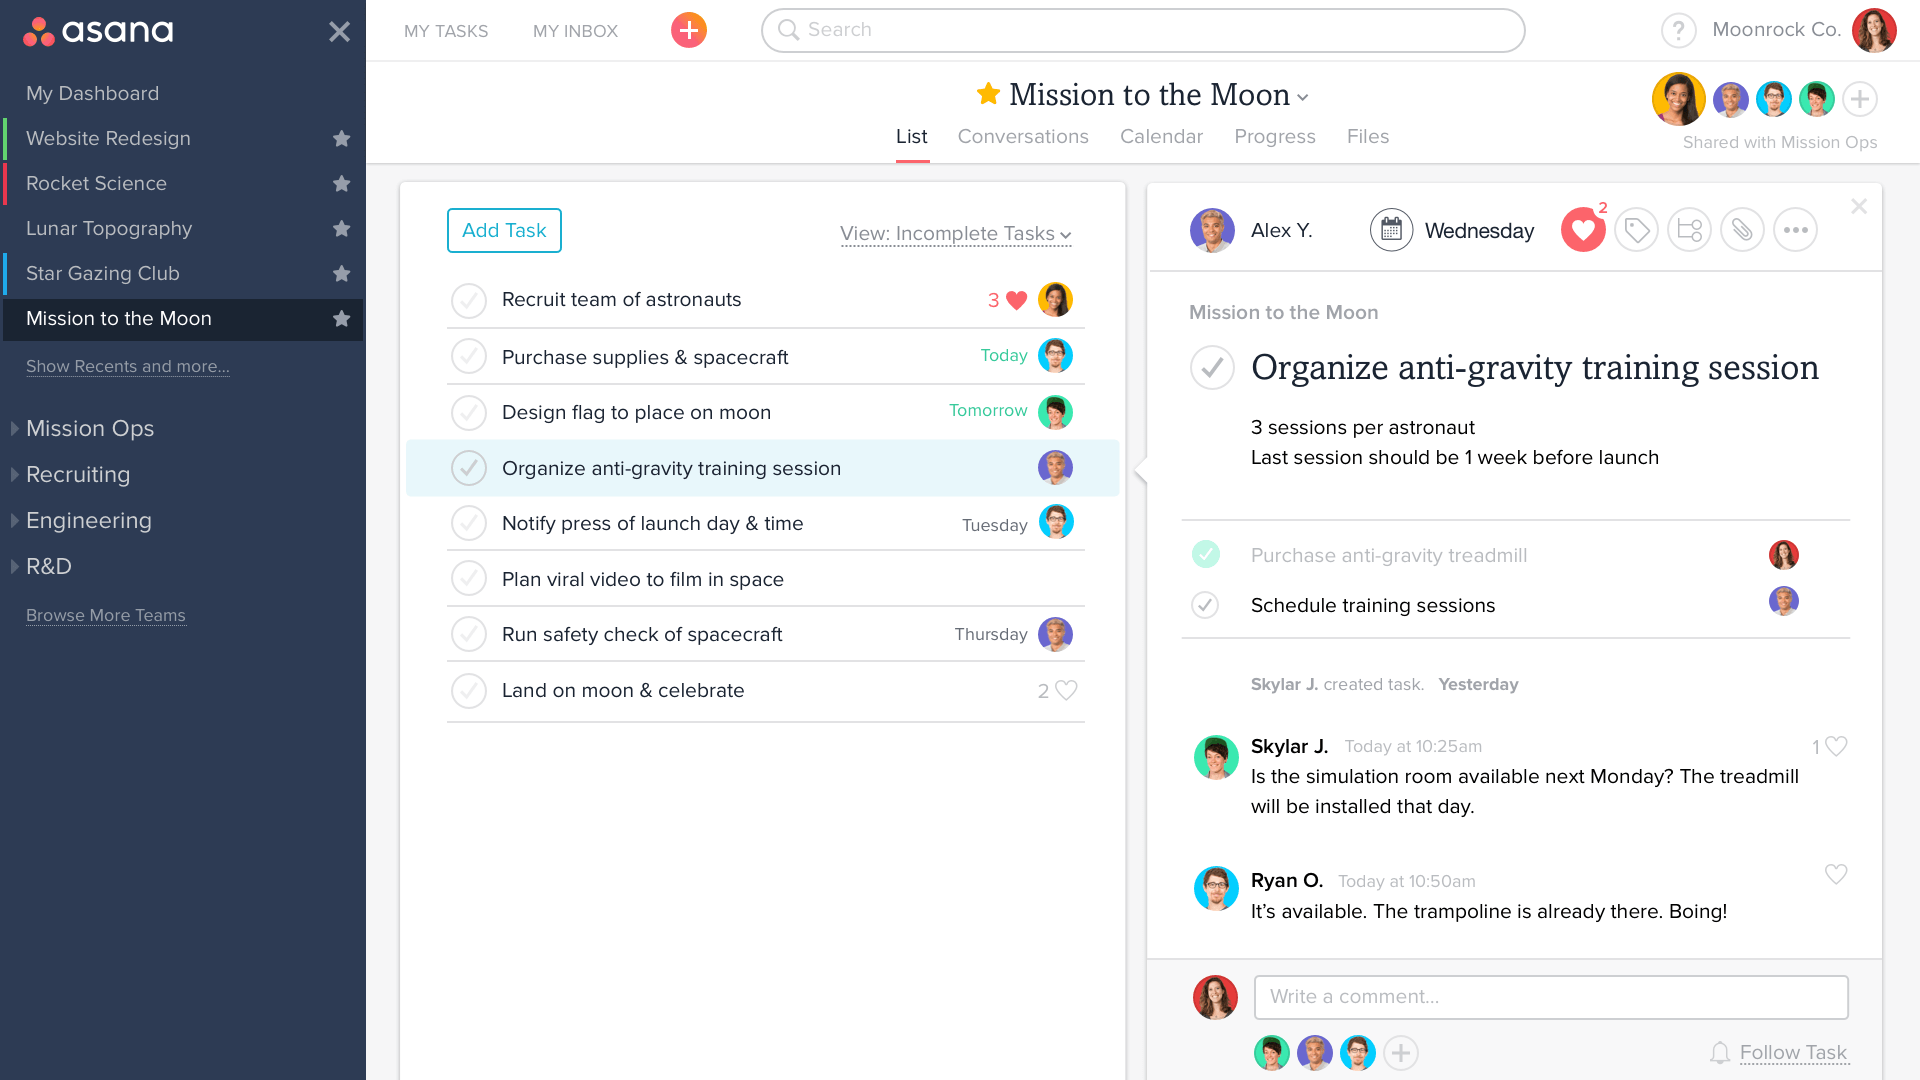 asana review task management